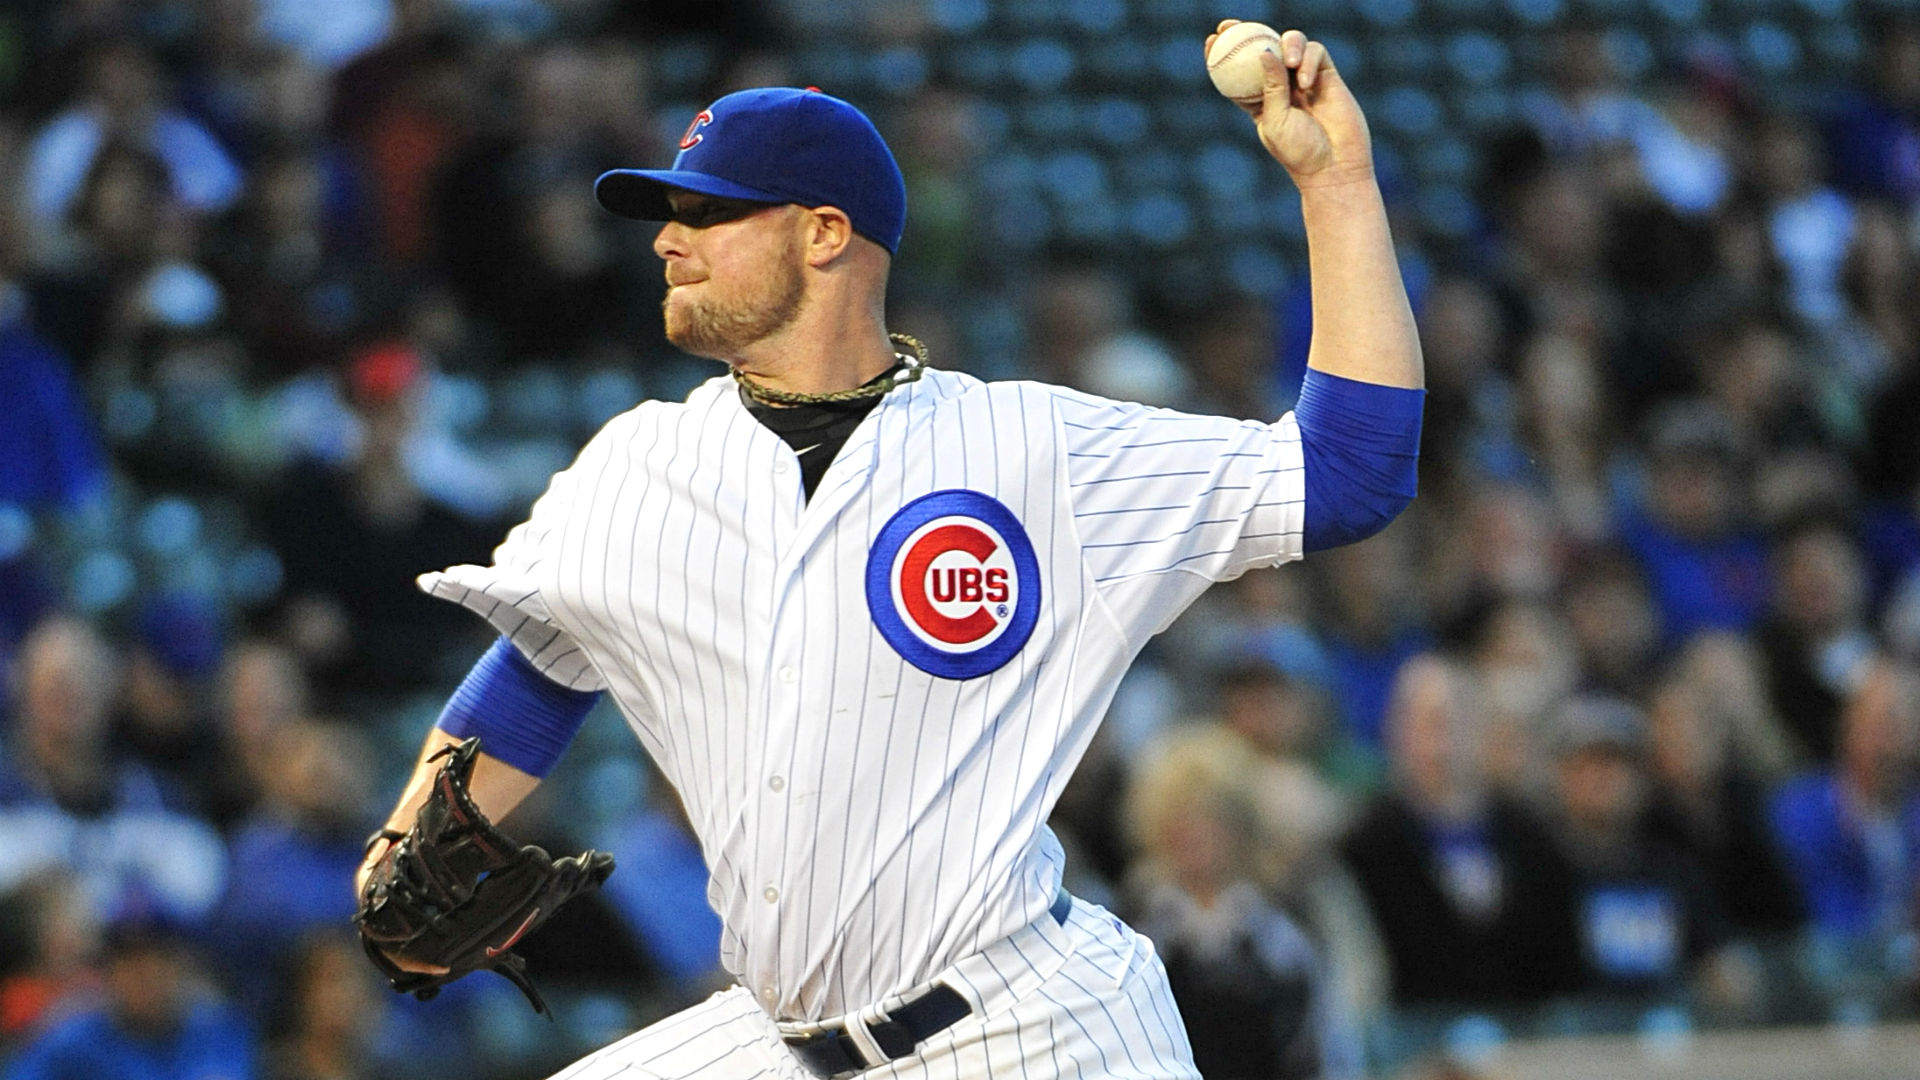 Jon-Lester-041315-Getty-FTR.jpg